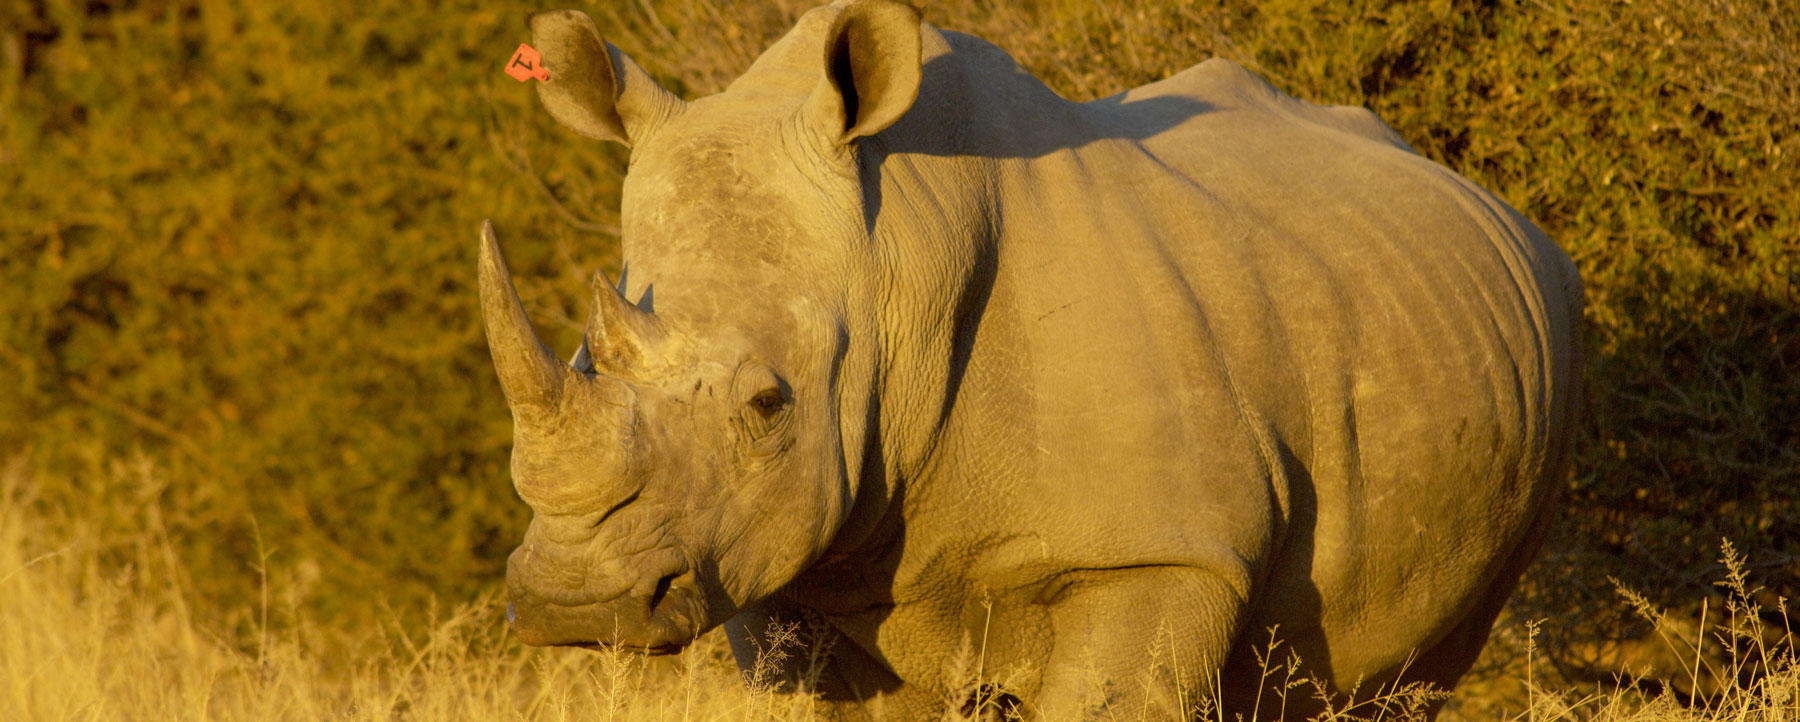 Black Rhino, Clocolan Free State, So. Africa.